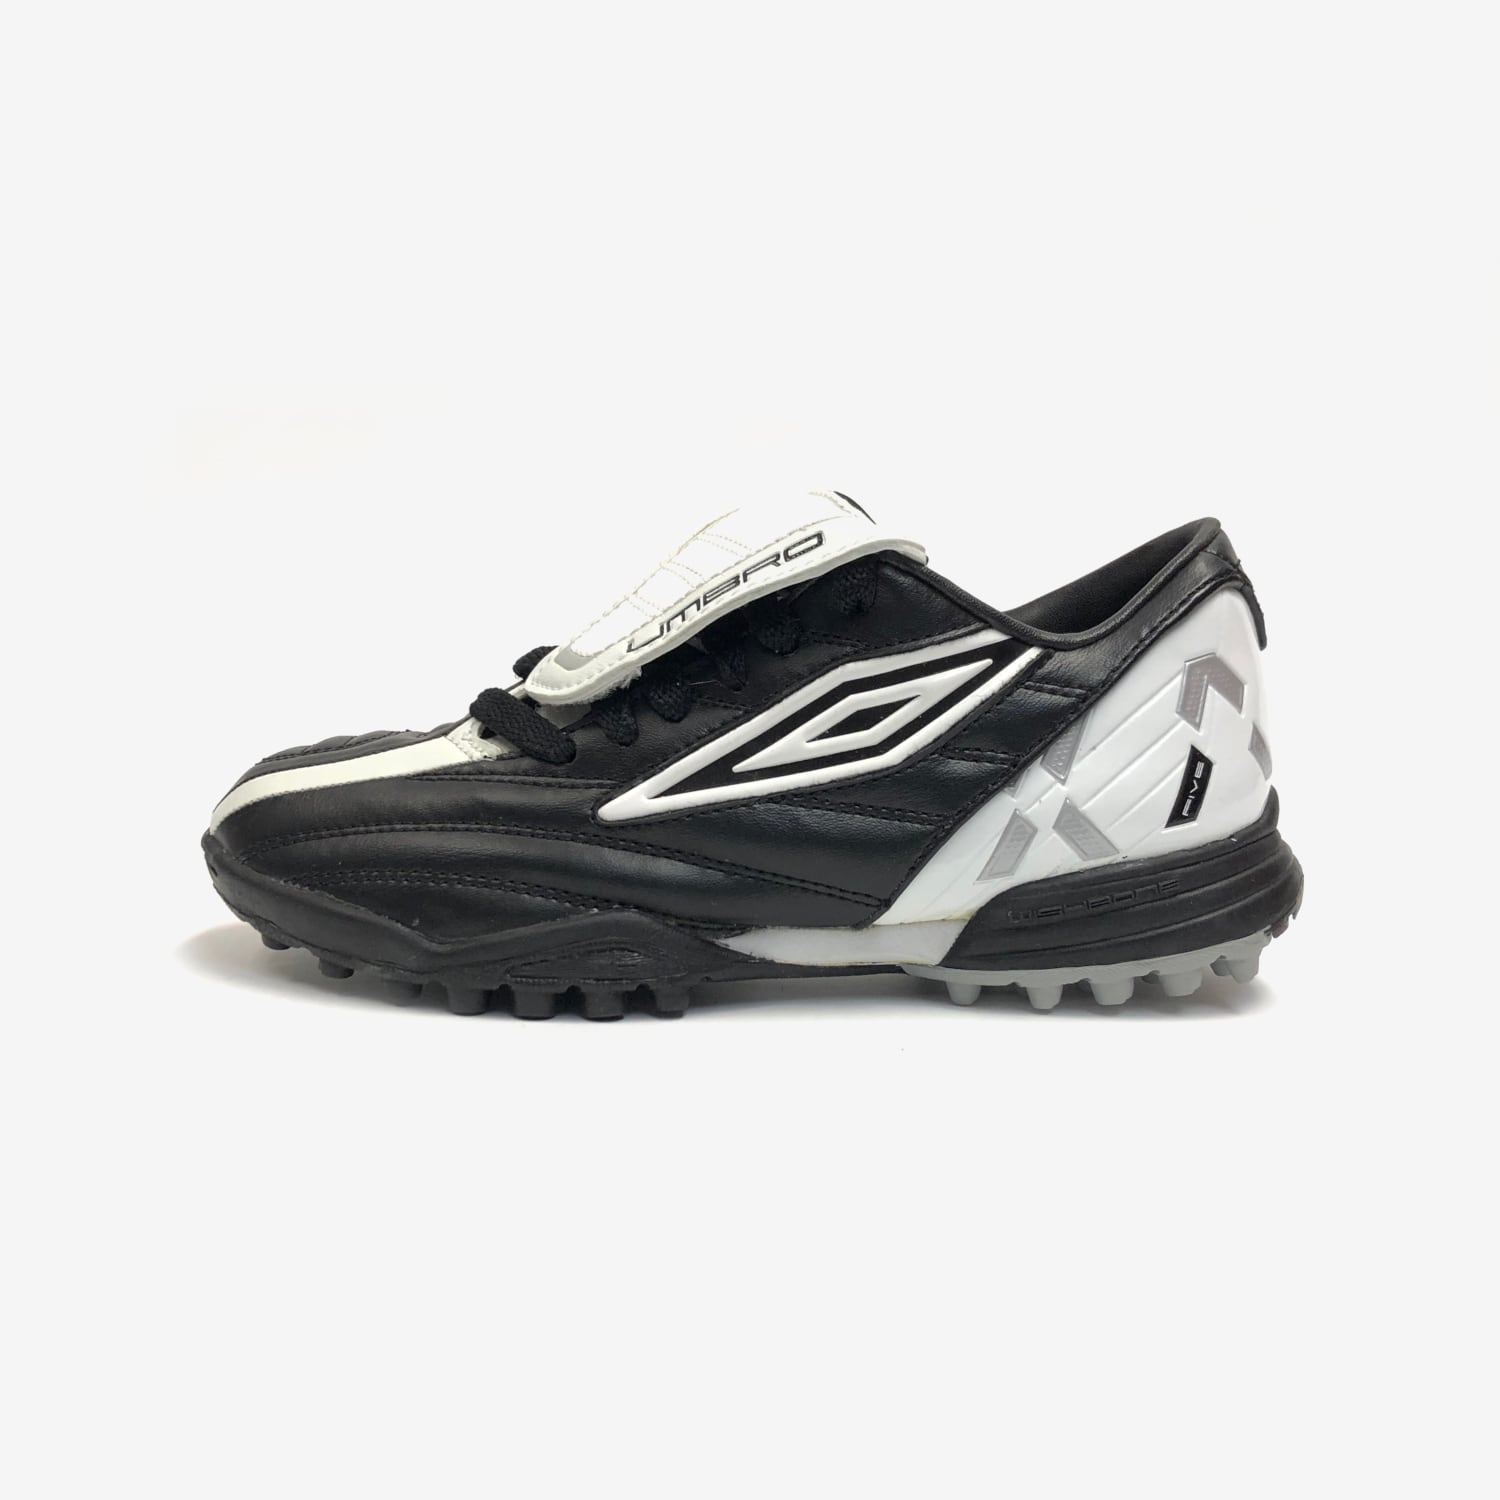 d86b9823d35896 Umbro XAI V League Jr Turf